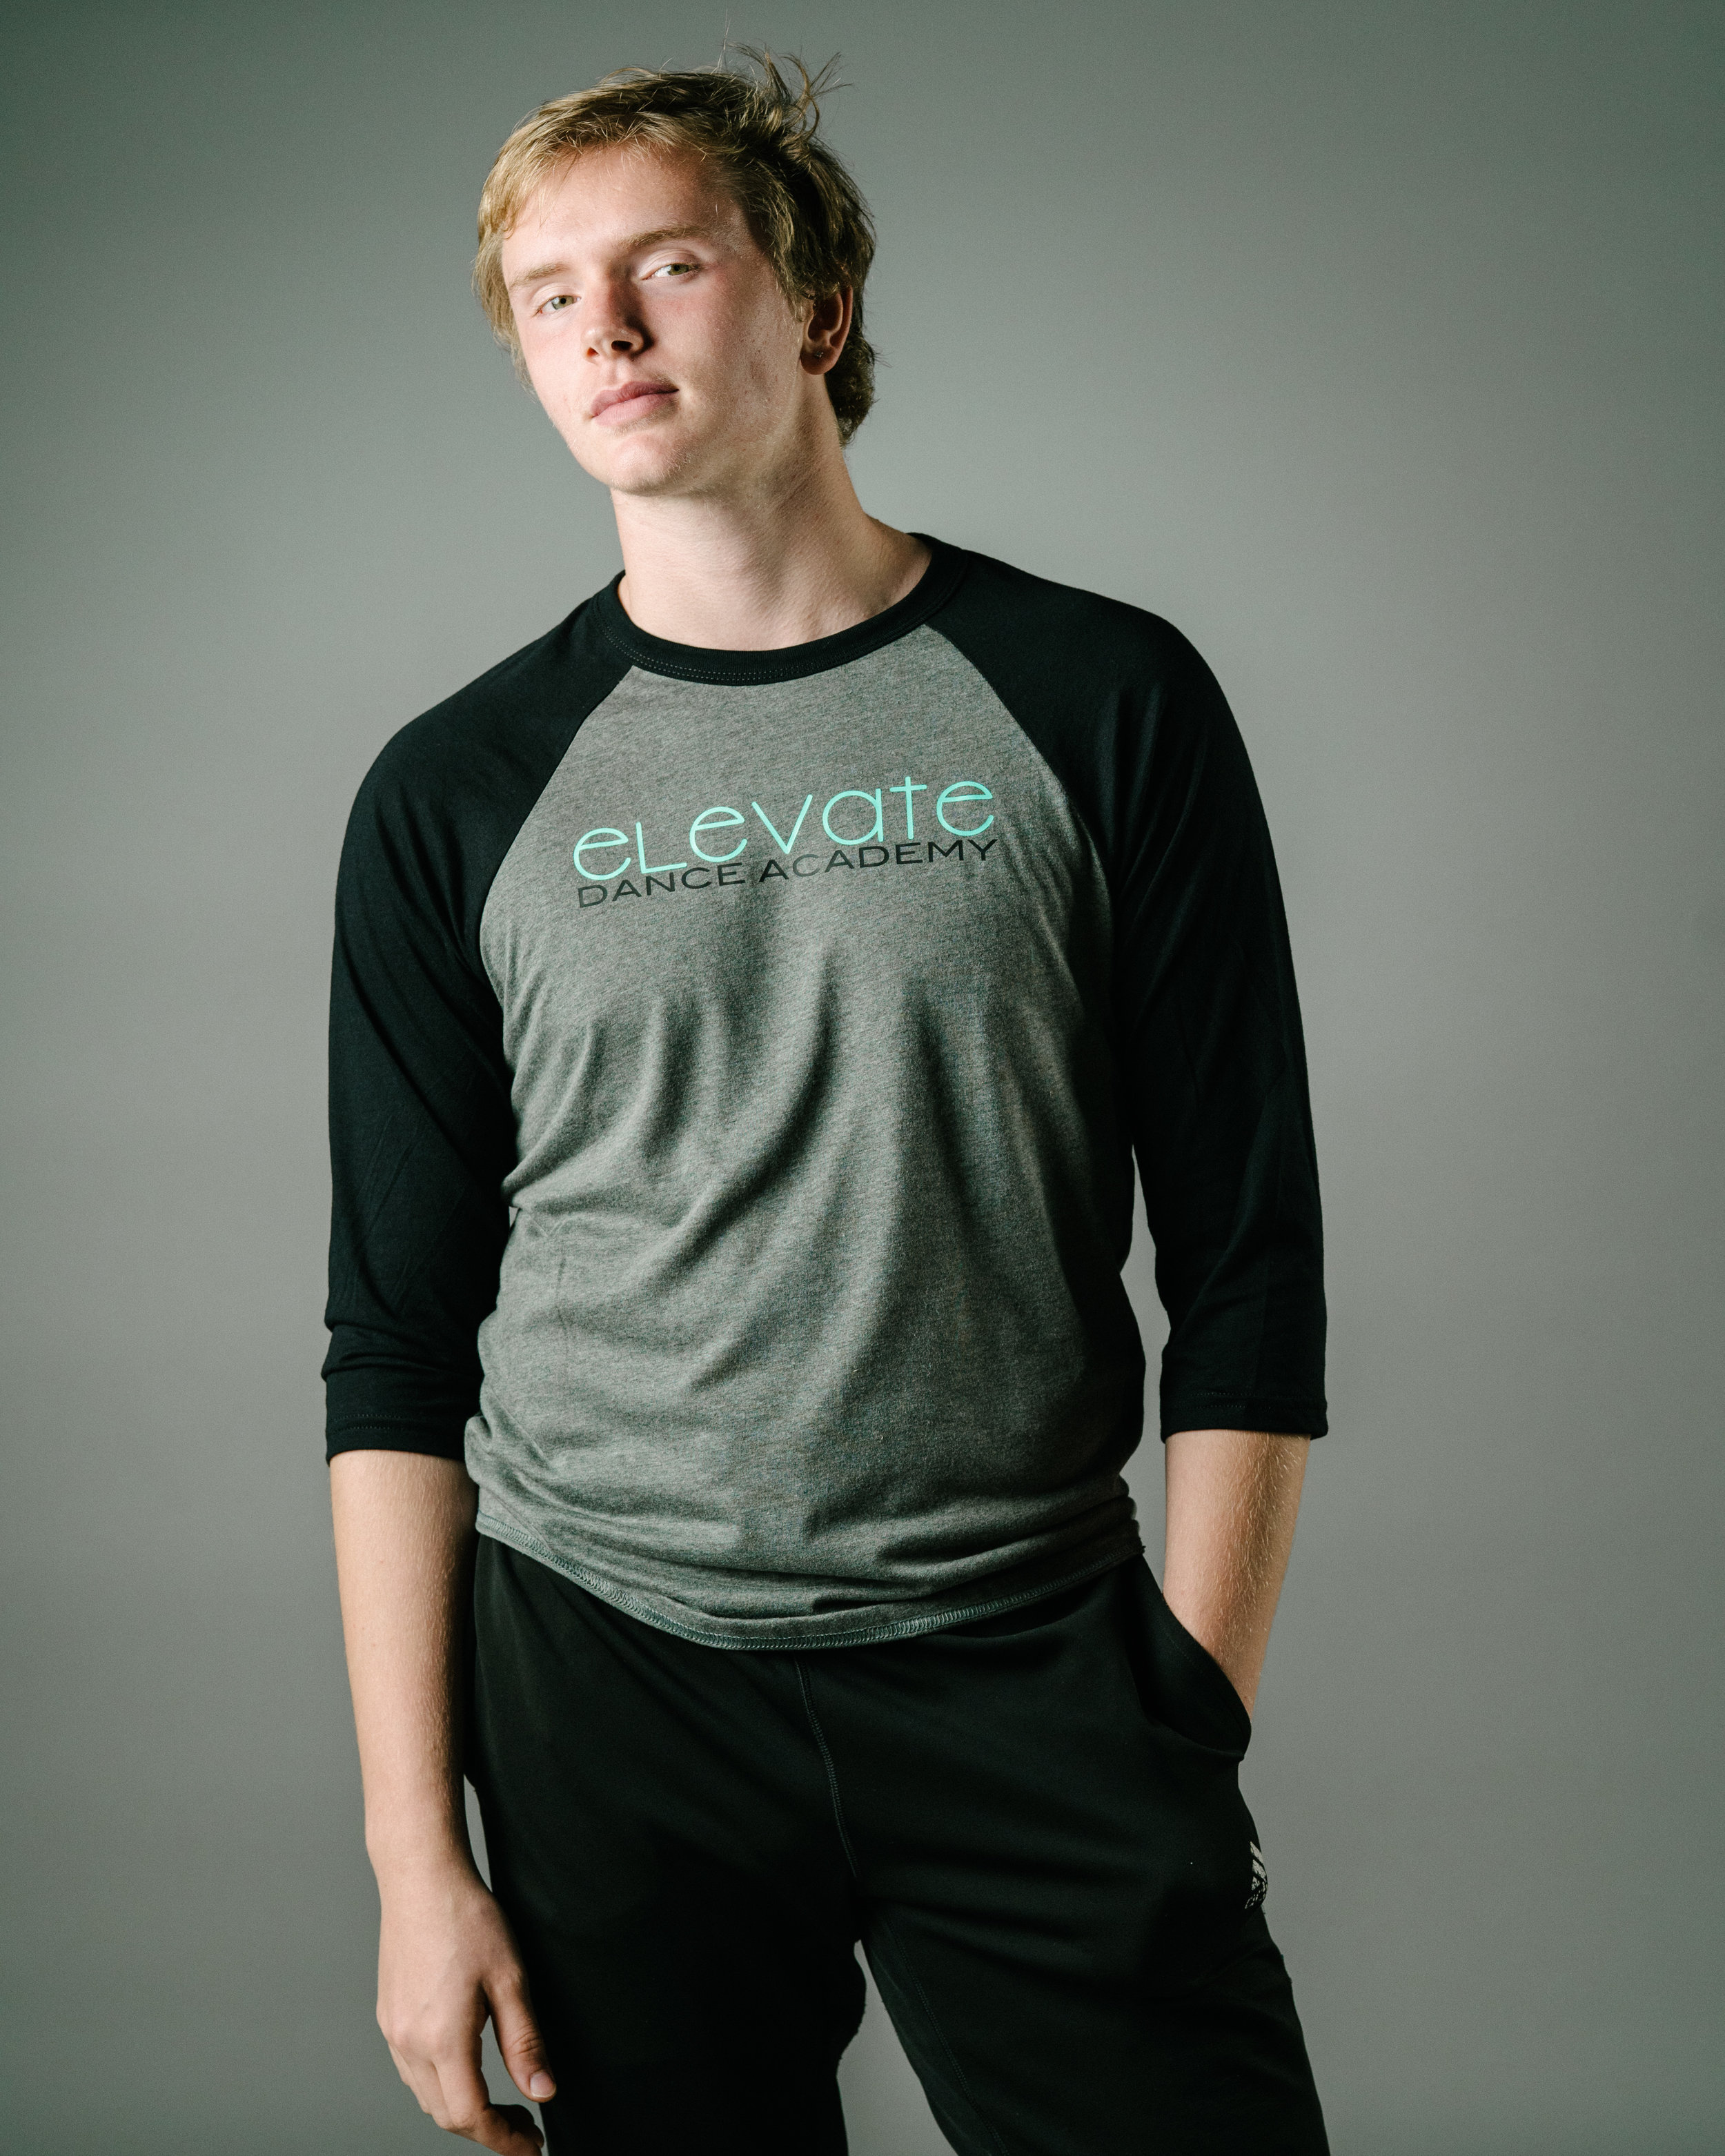 Grey/Black Baseball T-Shirt (Elevate logo)